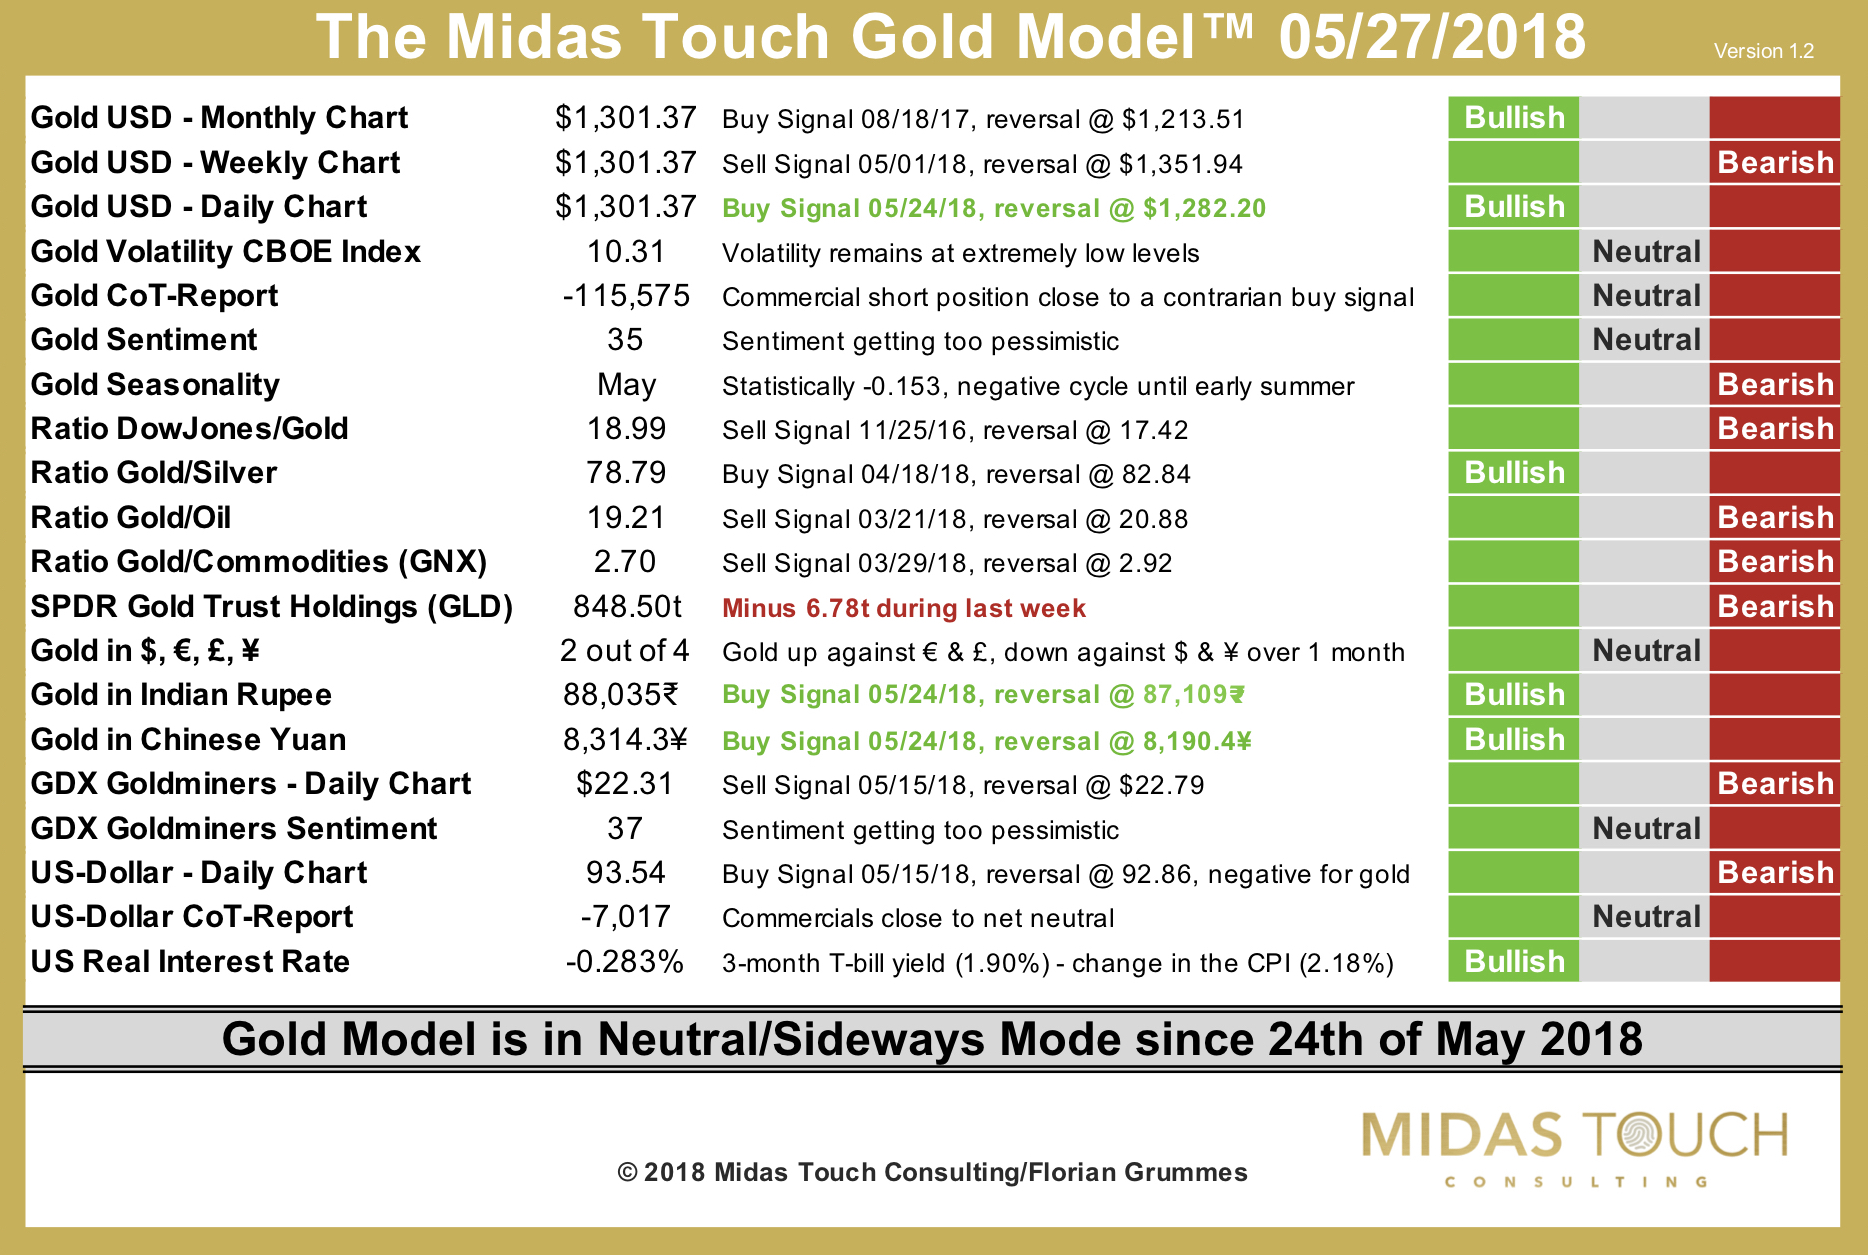 The Midas Touch Gold Model™ as of May 27th, 2018